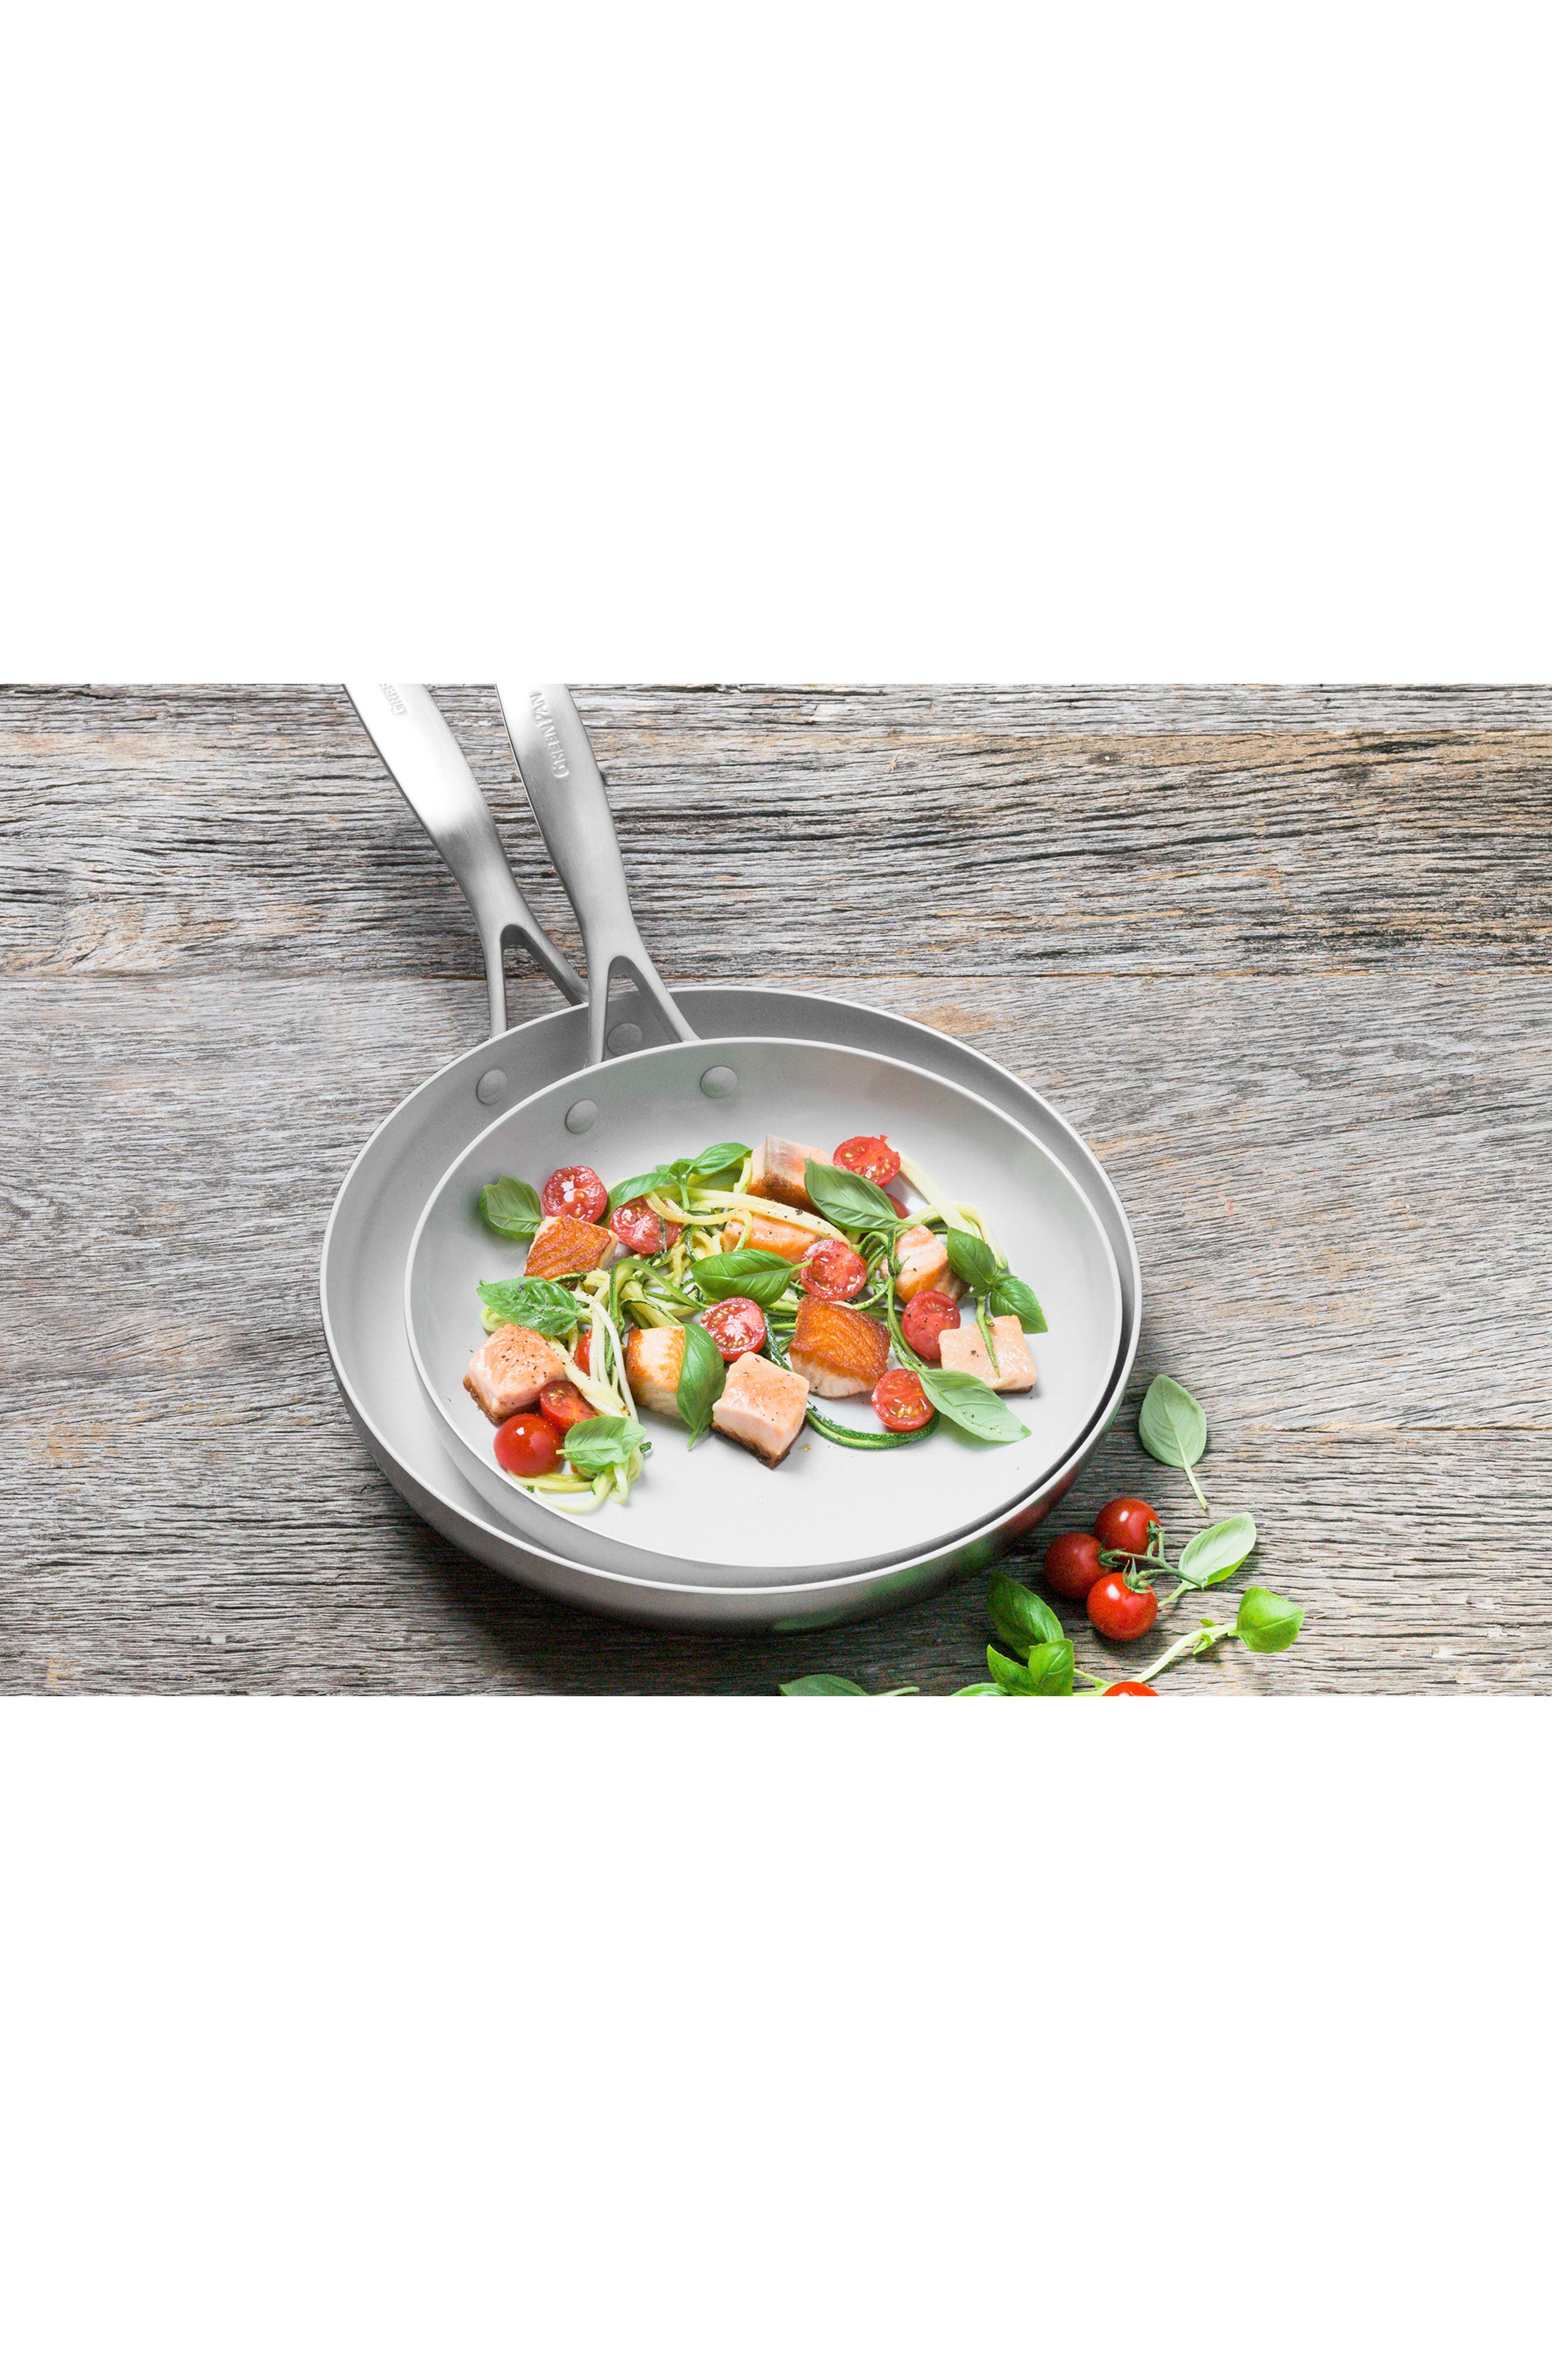 GREENPAN,                             Venice Pro 10-Inch & 12-Inch Multilayer Stainless Steel Ceramic Nonstick Frying Pan Set,                             Alternate thumbnail 6, color,                             STAINLESS STEEL